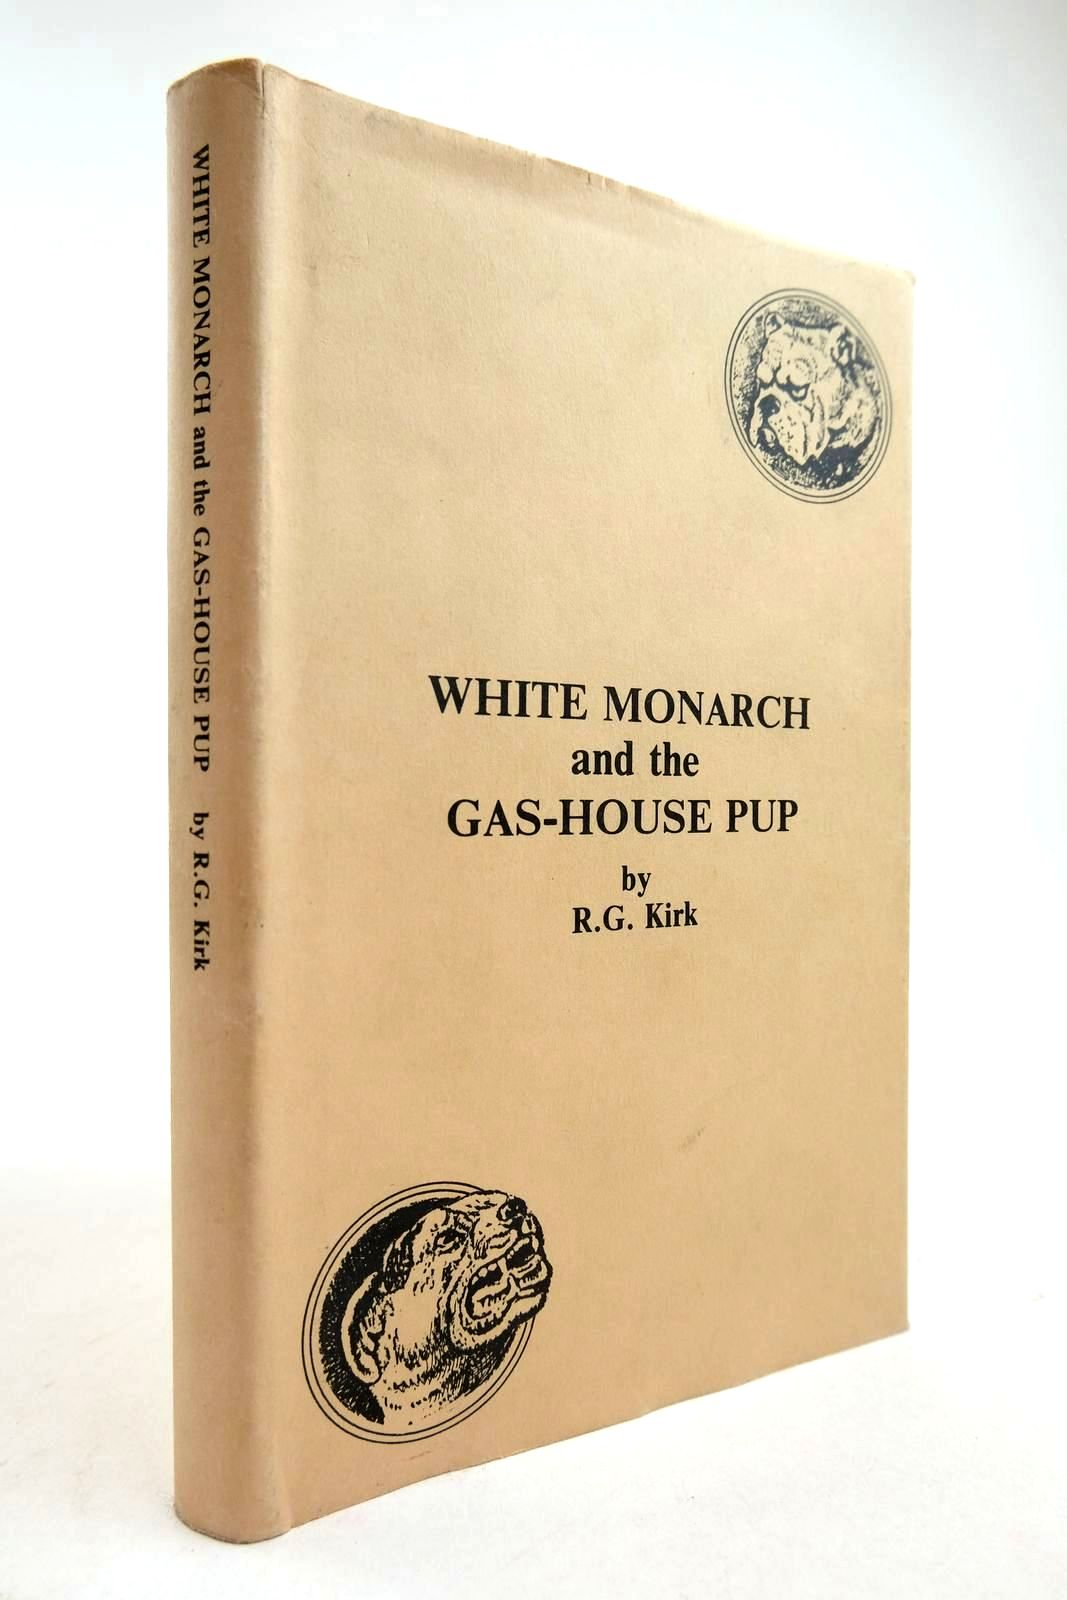 Photo of WHITE MONARCH AND THE GAS-HOUSE PUP- Stock Number: 2134259